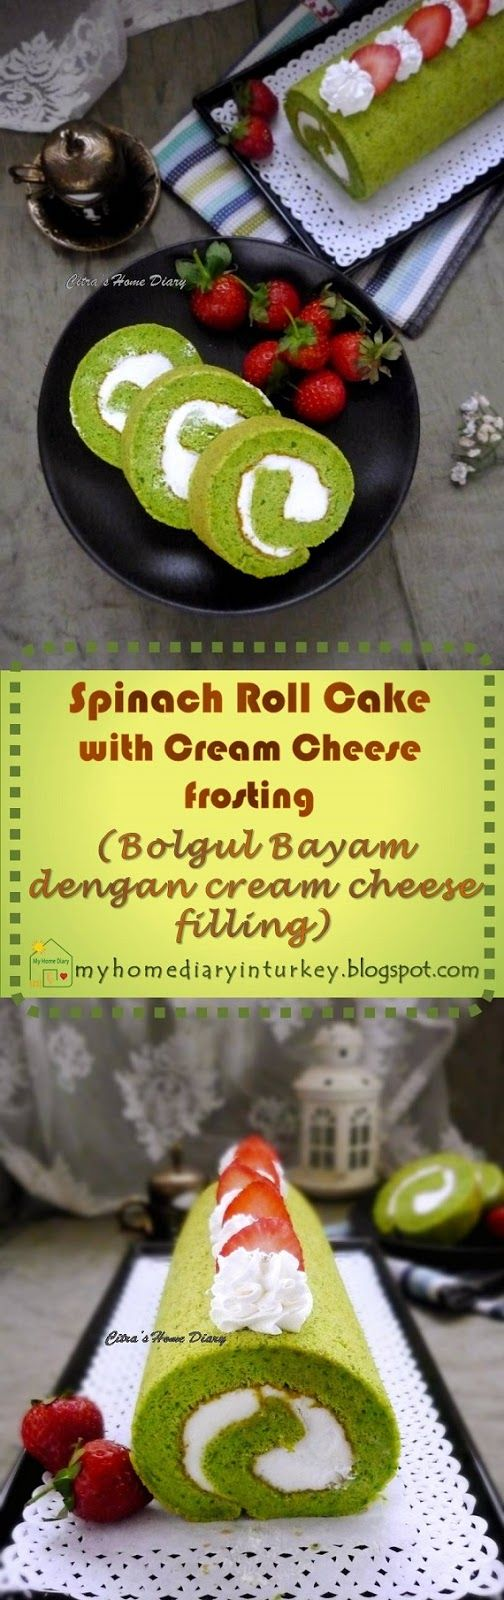 Spinach Roll Cake with Cream Cheese filling / Bolu gulung Bayam dengan cream cheese filling | Çitra's Home Diary. #swissrollcake #jellyroll #rollcake #bolugulung #creamcheesefilling #dessert #spinachcake #spinachrecipeidea #greencolorcake